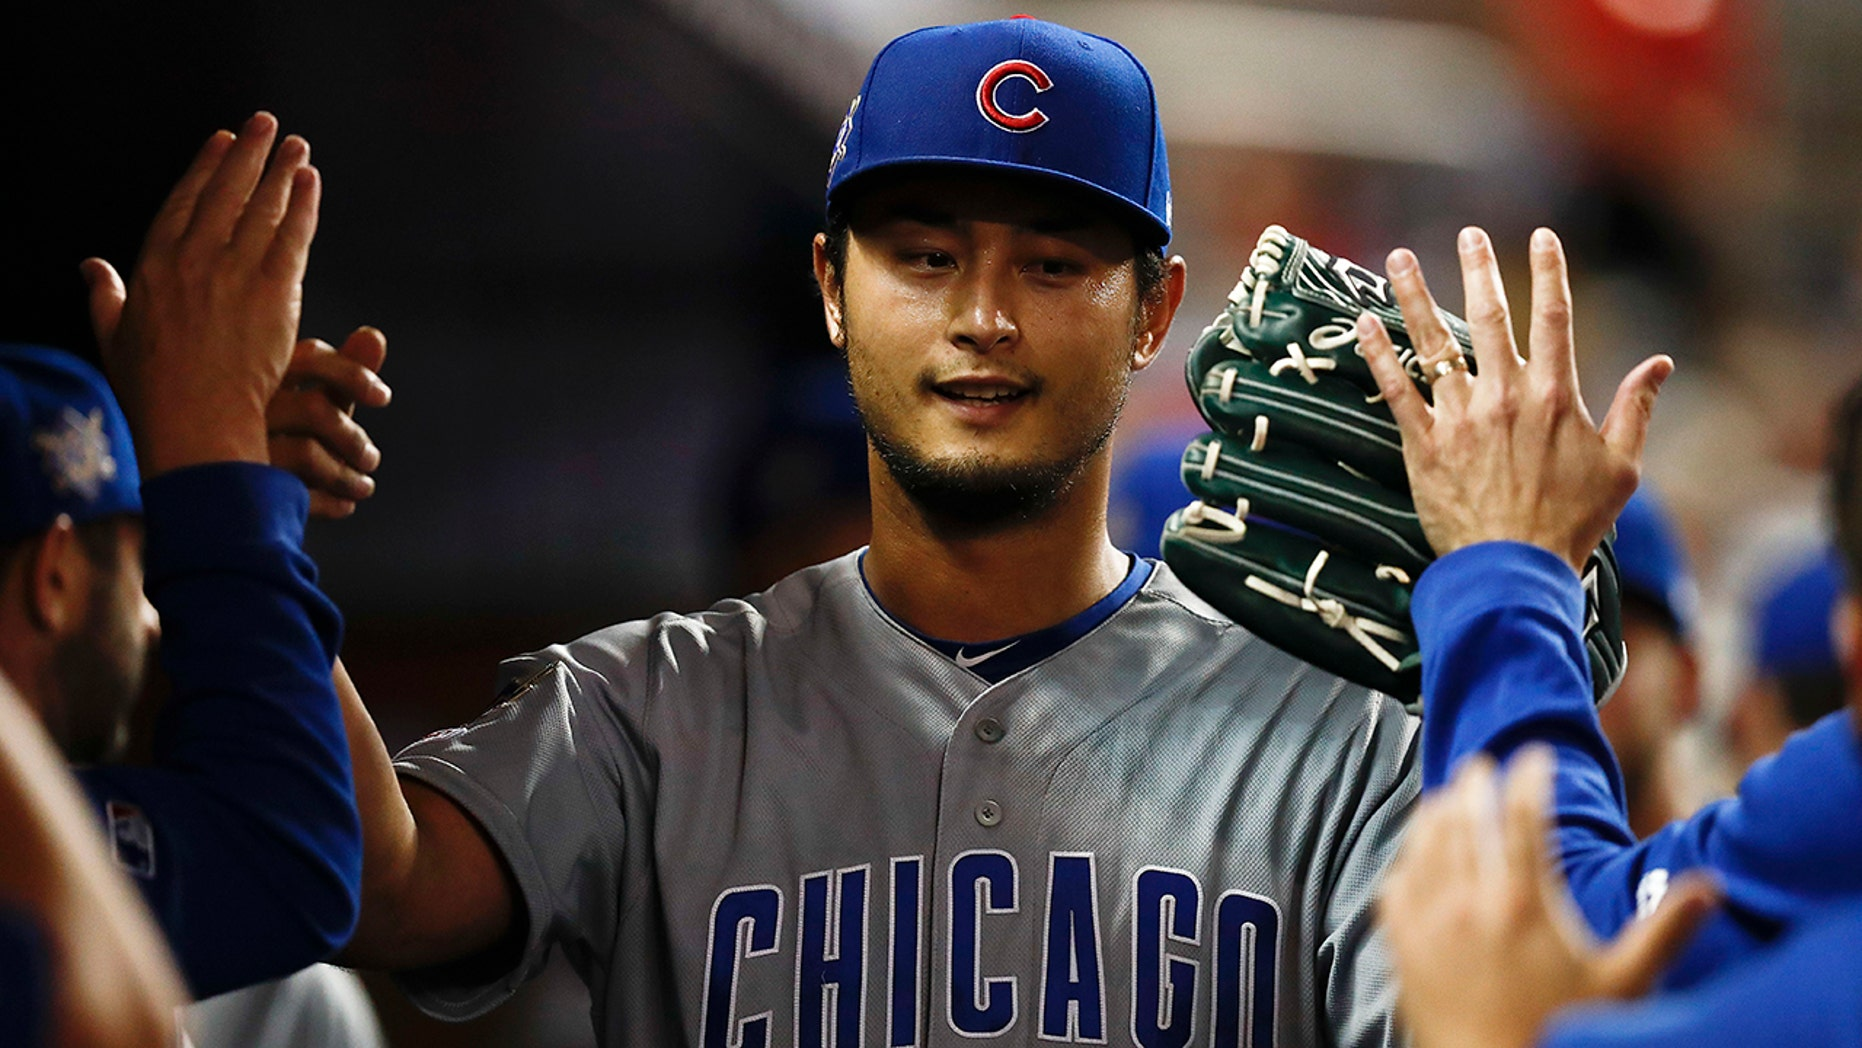 Chicago Cubs starting pitcher Yu Darvish high-fives teammates after being taken out of a baseball game during the seventh inning against the Miami Marlins, Monday, April 15, 2019, in Miami. (AP Photo/Brynn Anderson)